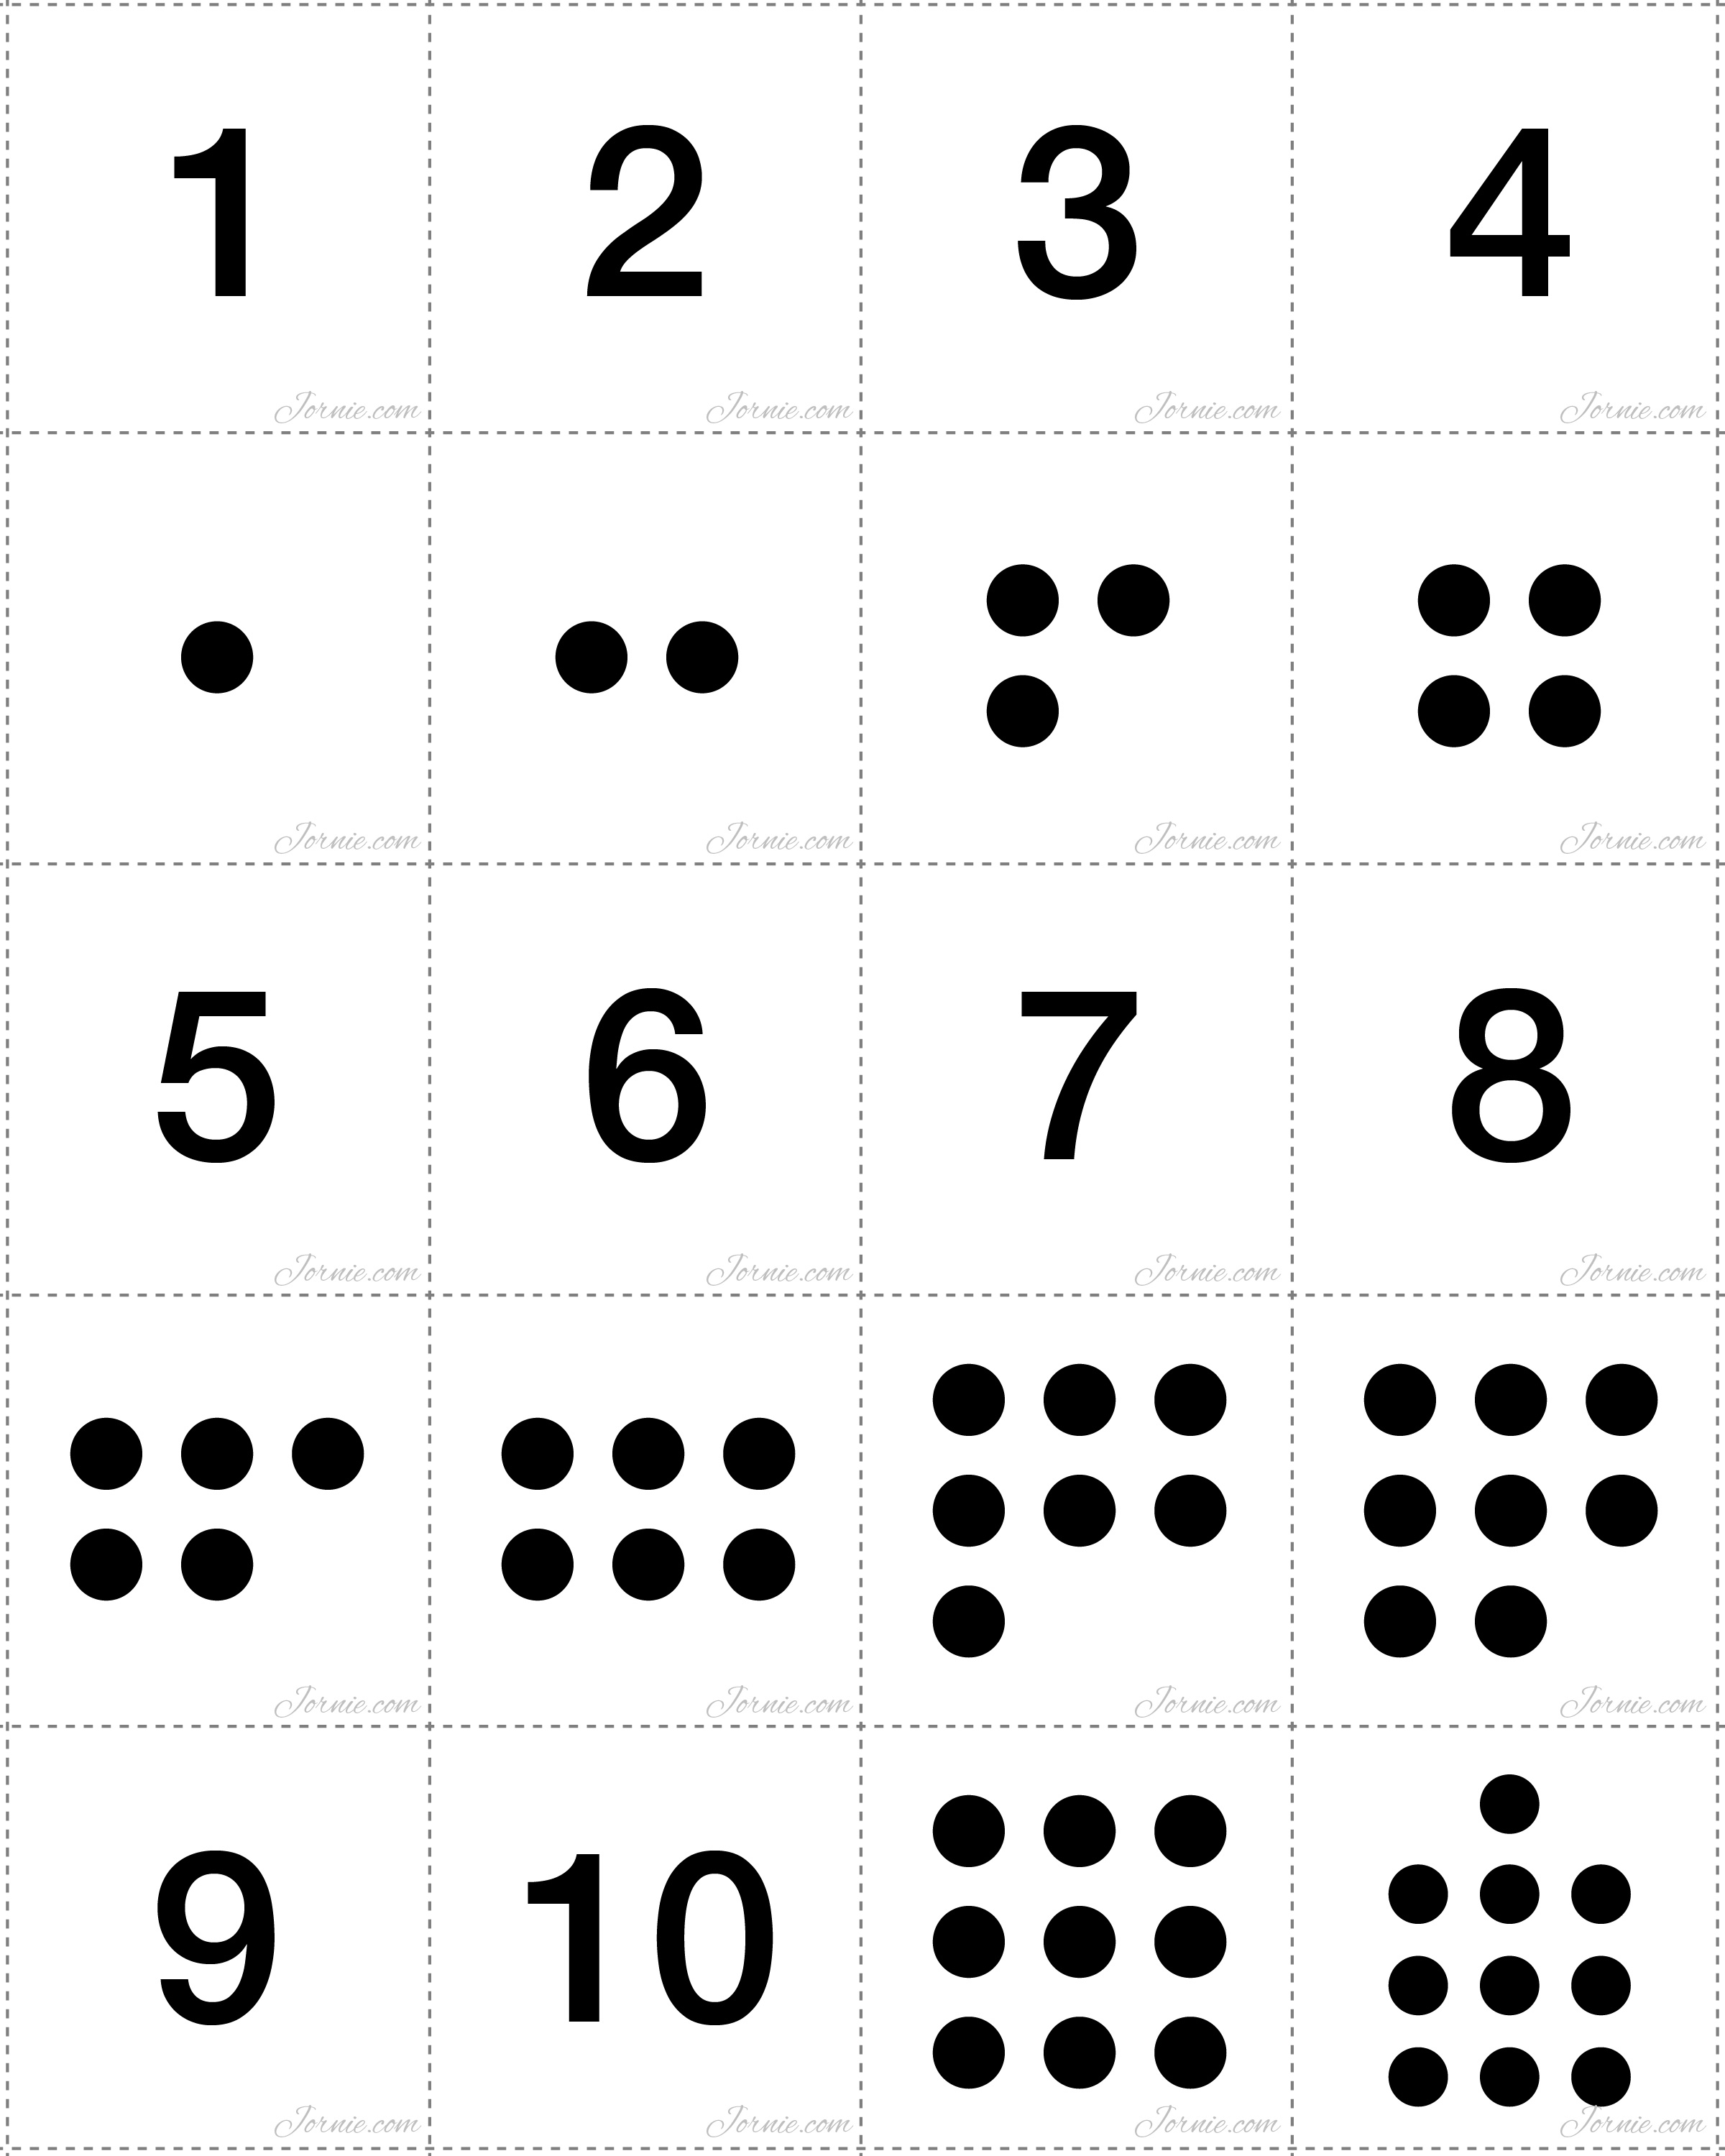 Number Printable Images Gallery Category Page 8